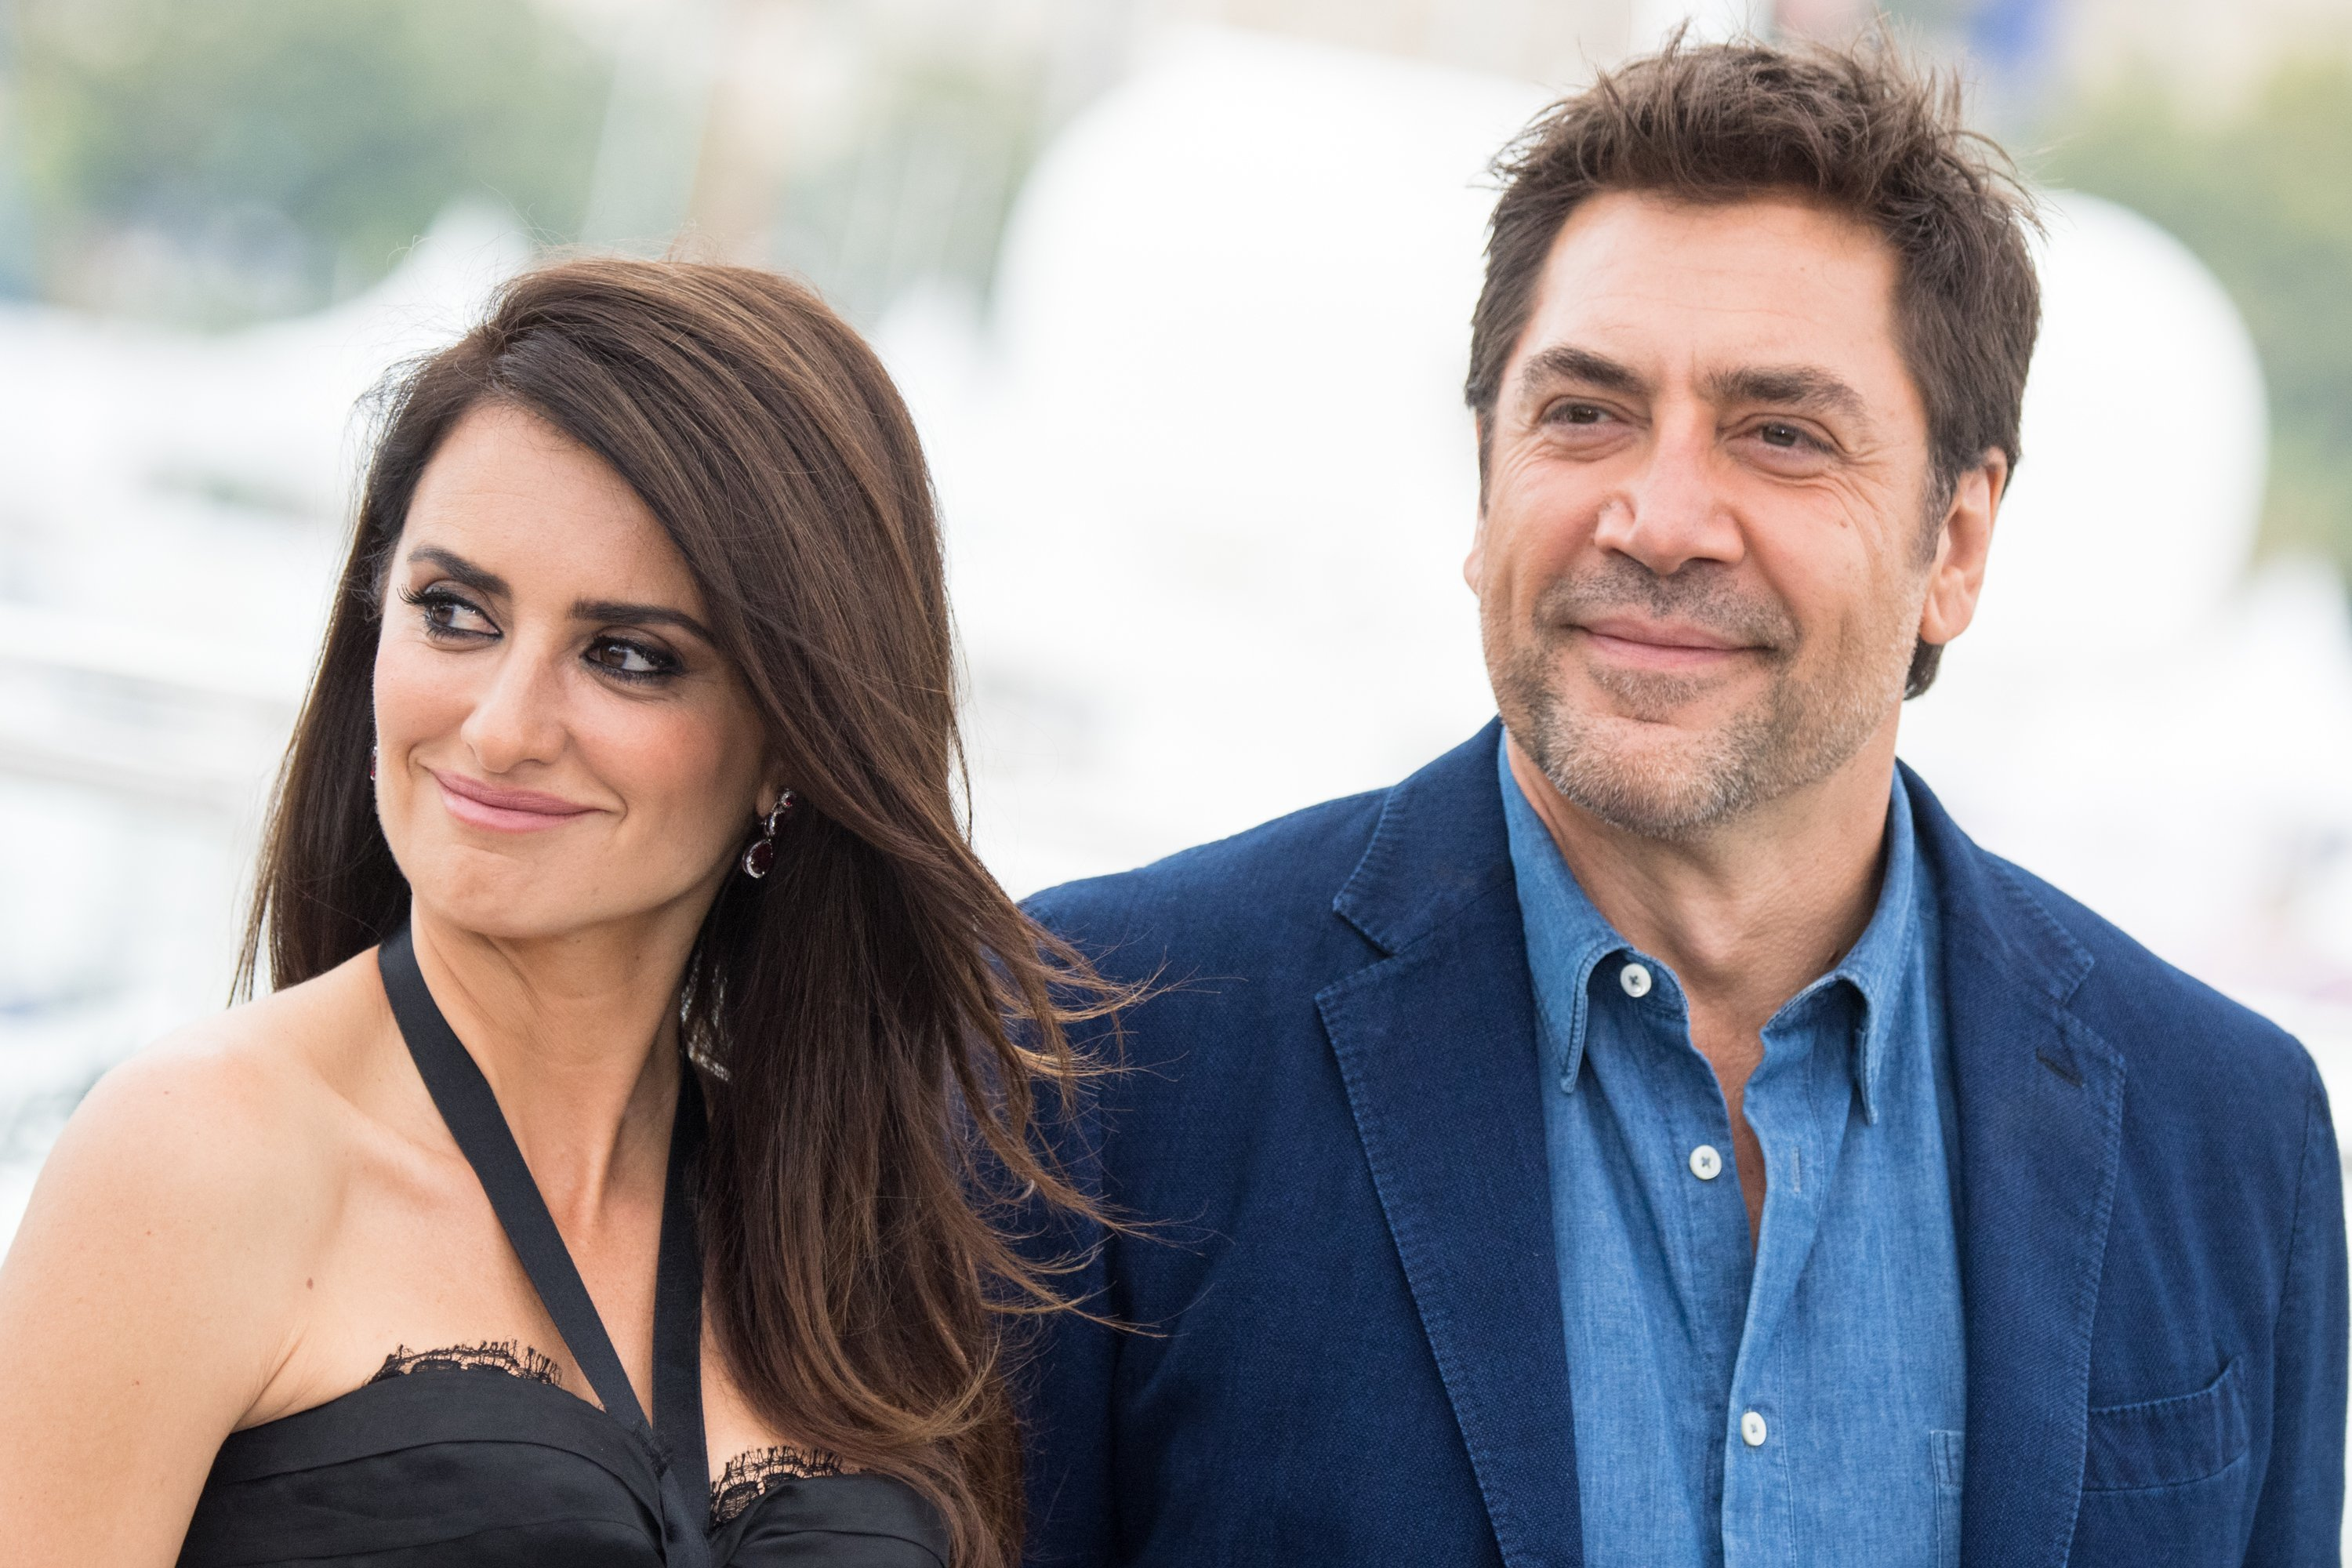 """Penelope Cruz and Javier Bardem attend a photocool for """"Everybody Knows"""" at the Cannes Film Festival in France on May 9, 2018 